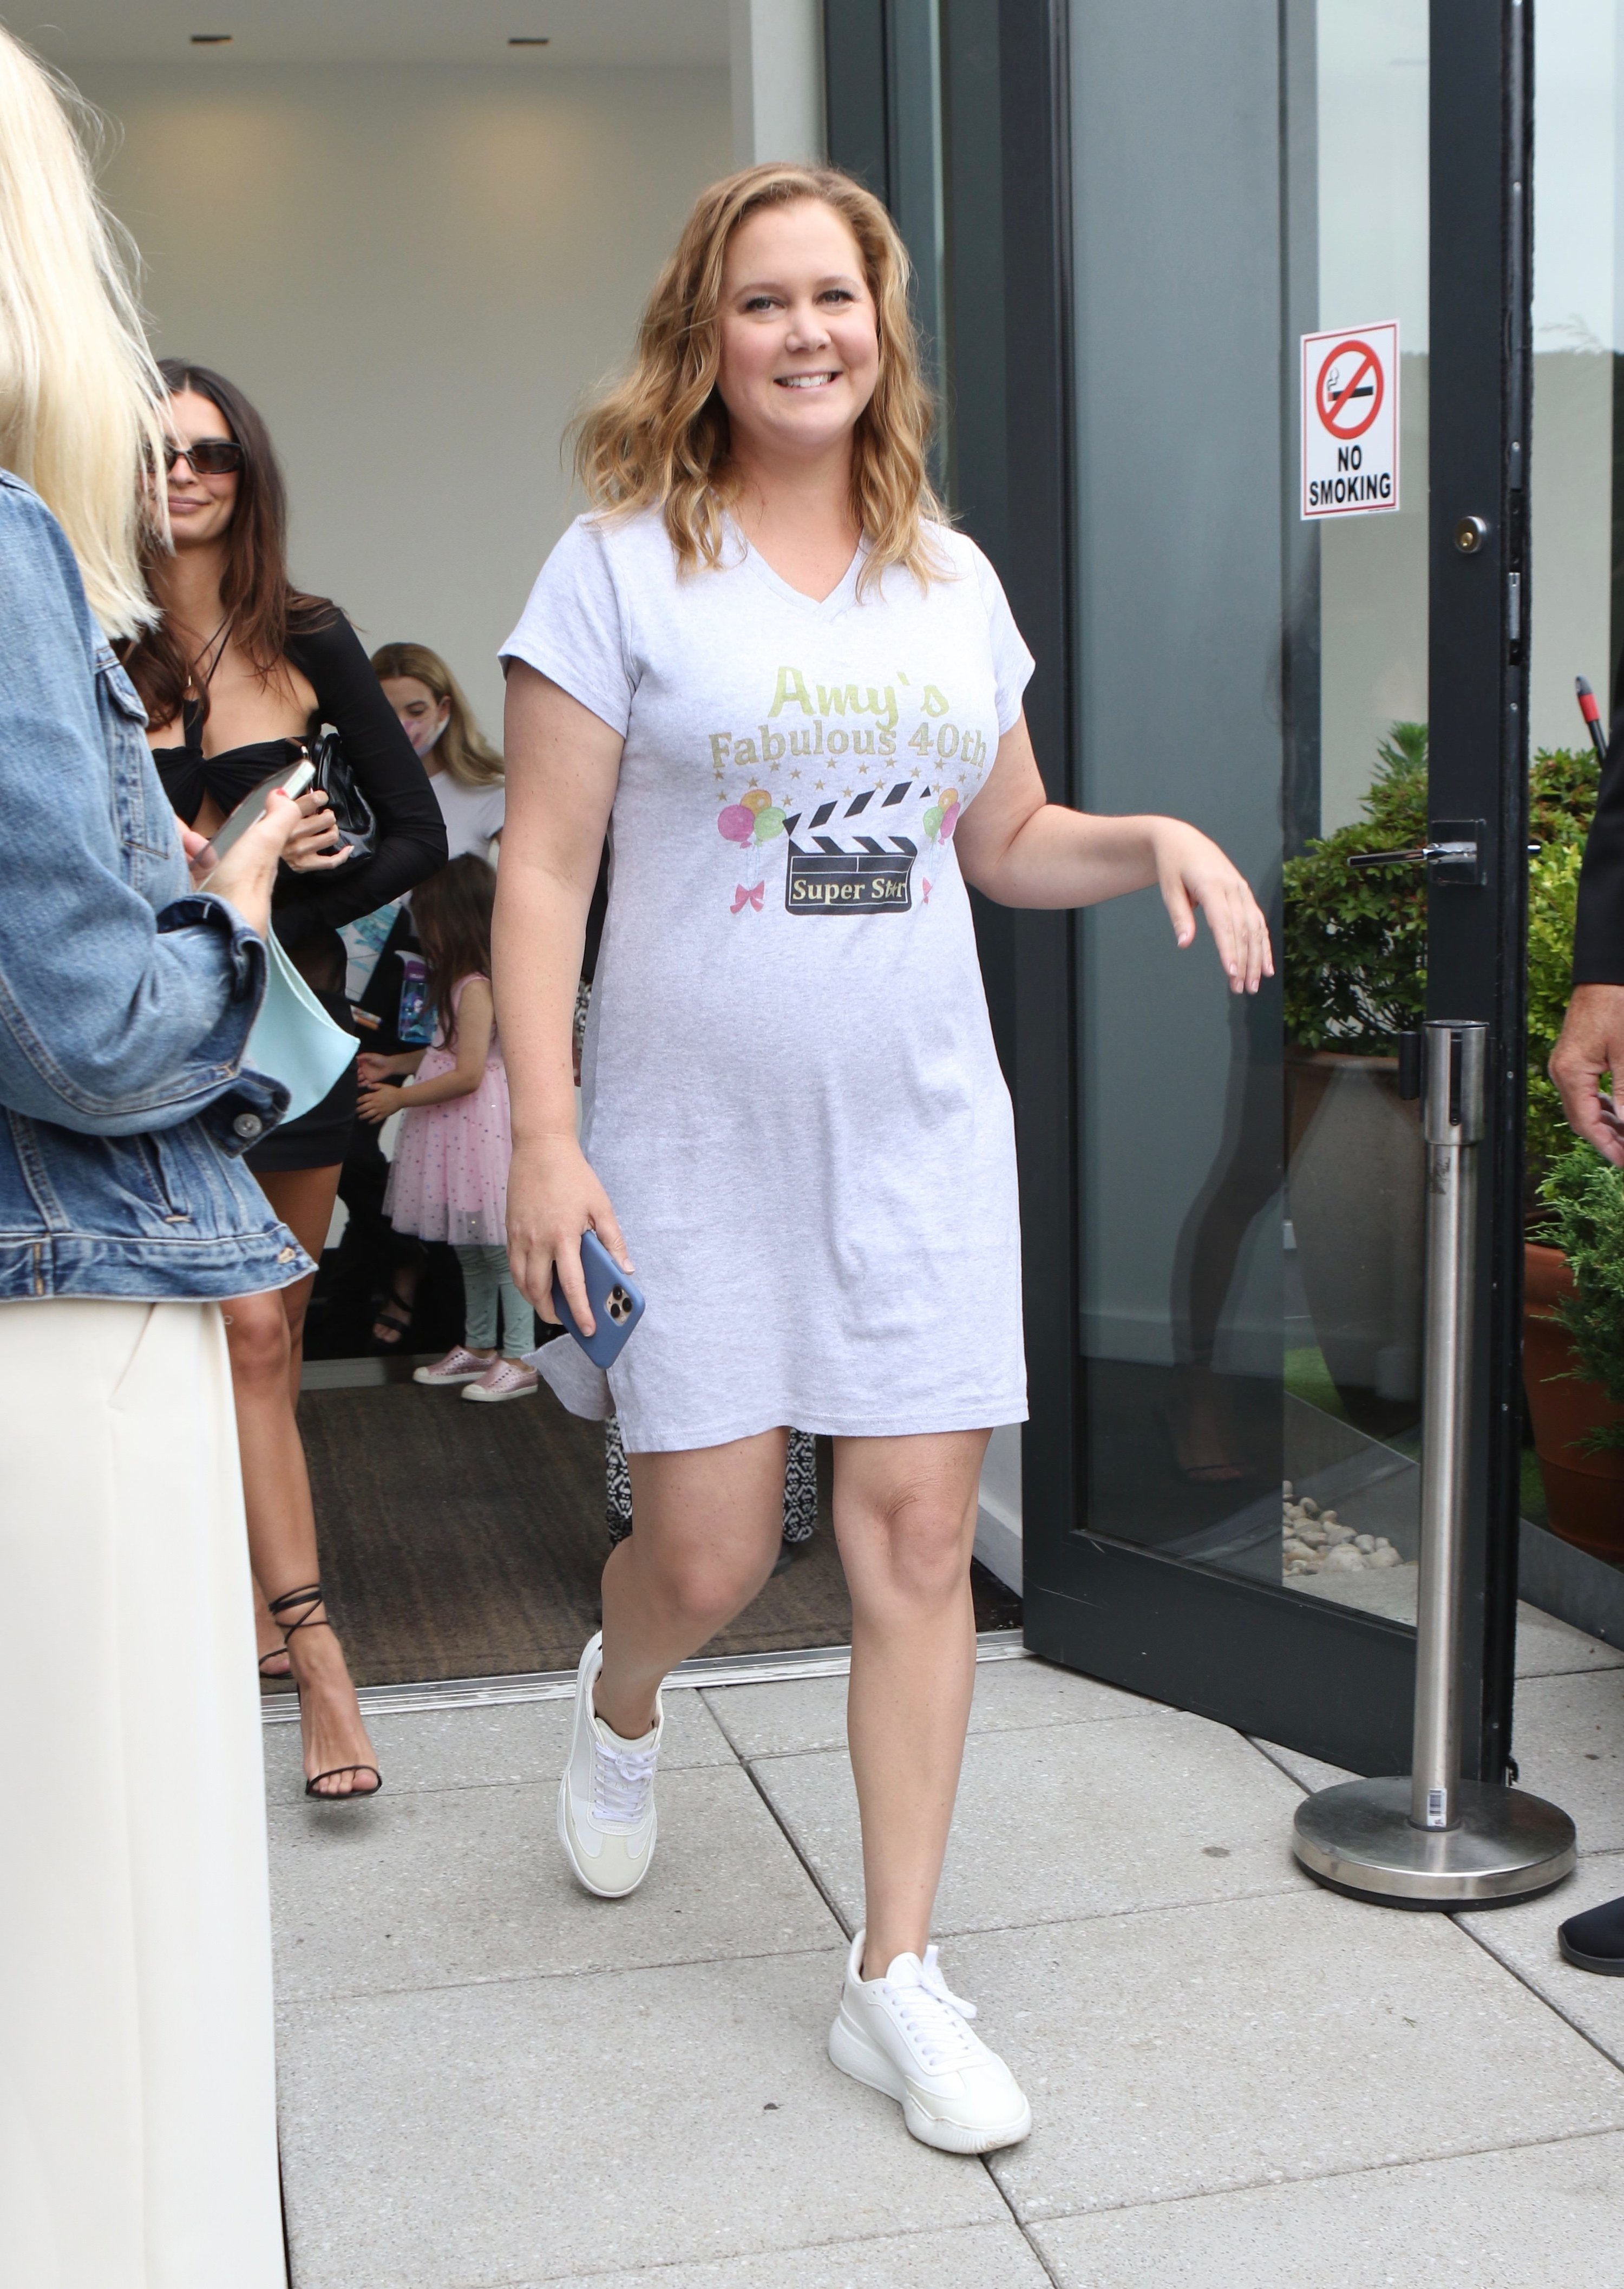 Amy Schumer walks through a doorway with Emily Ratajowski right behind her